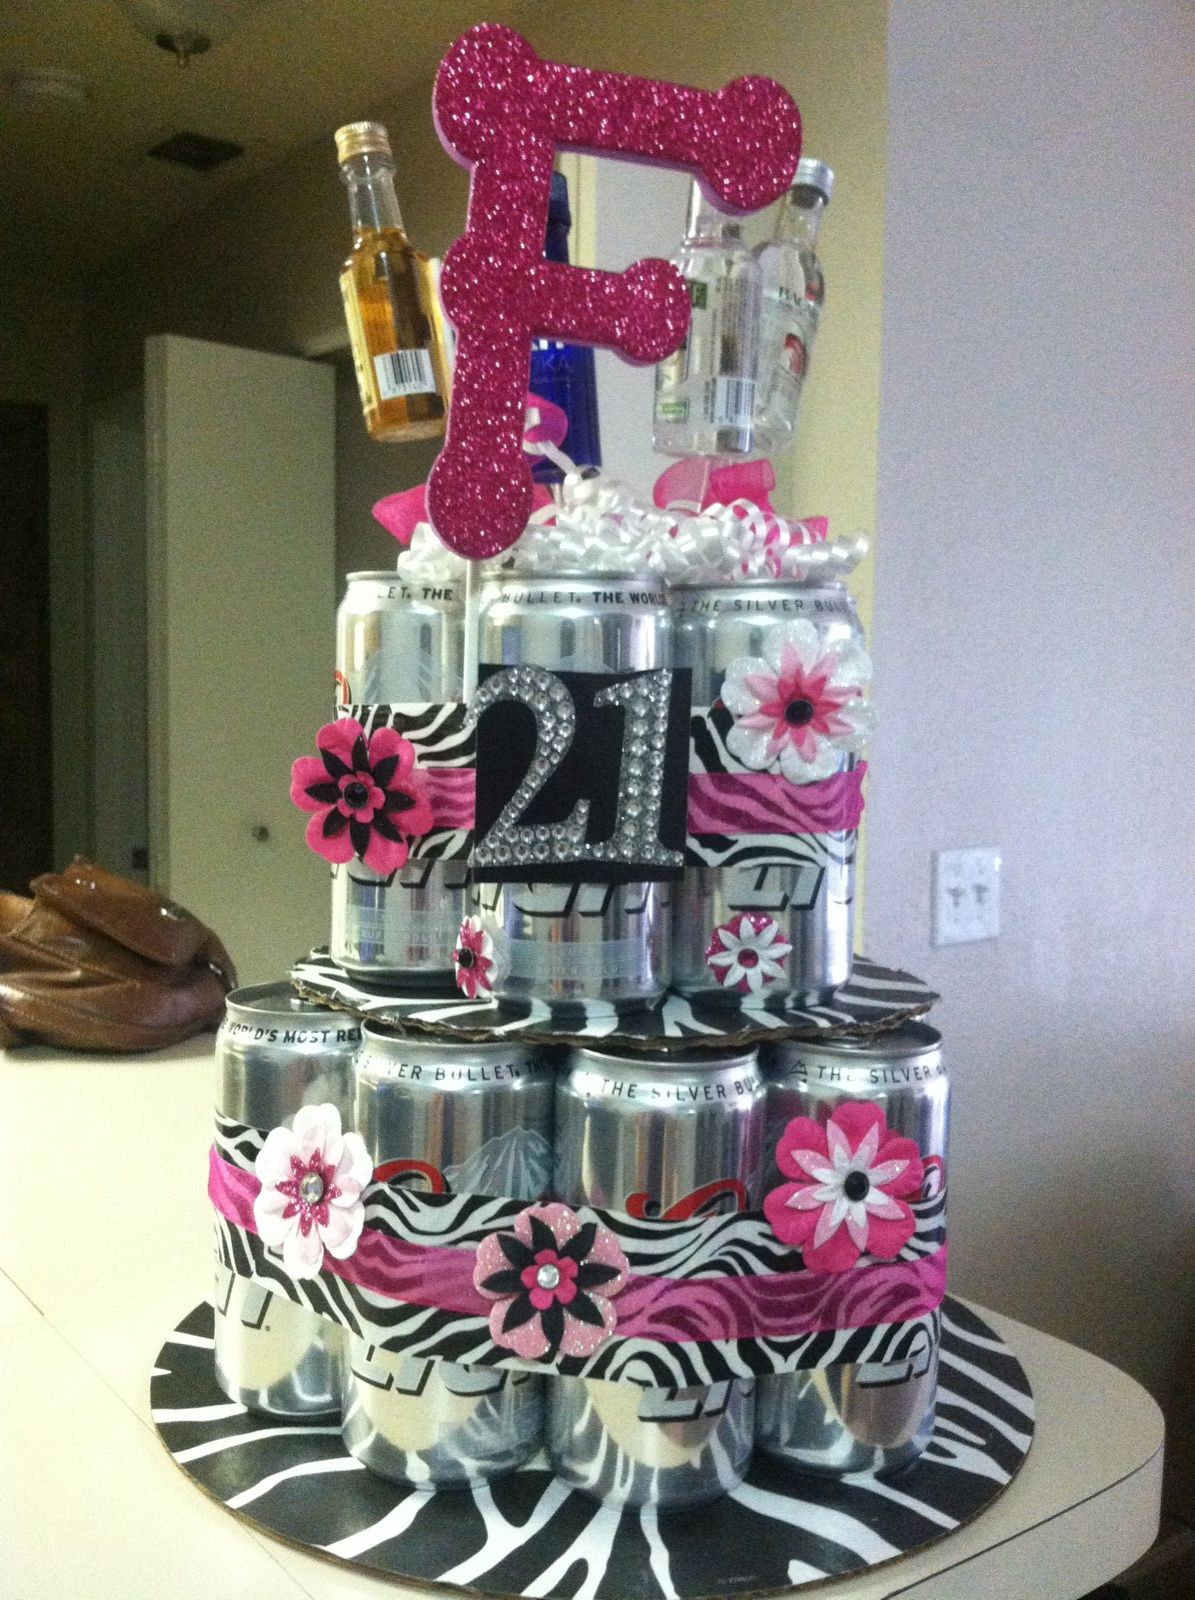 Diy 21st birthday cake ideas and designs for 21st birthday decoration ideas pinterest